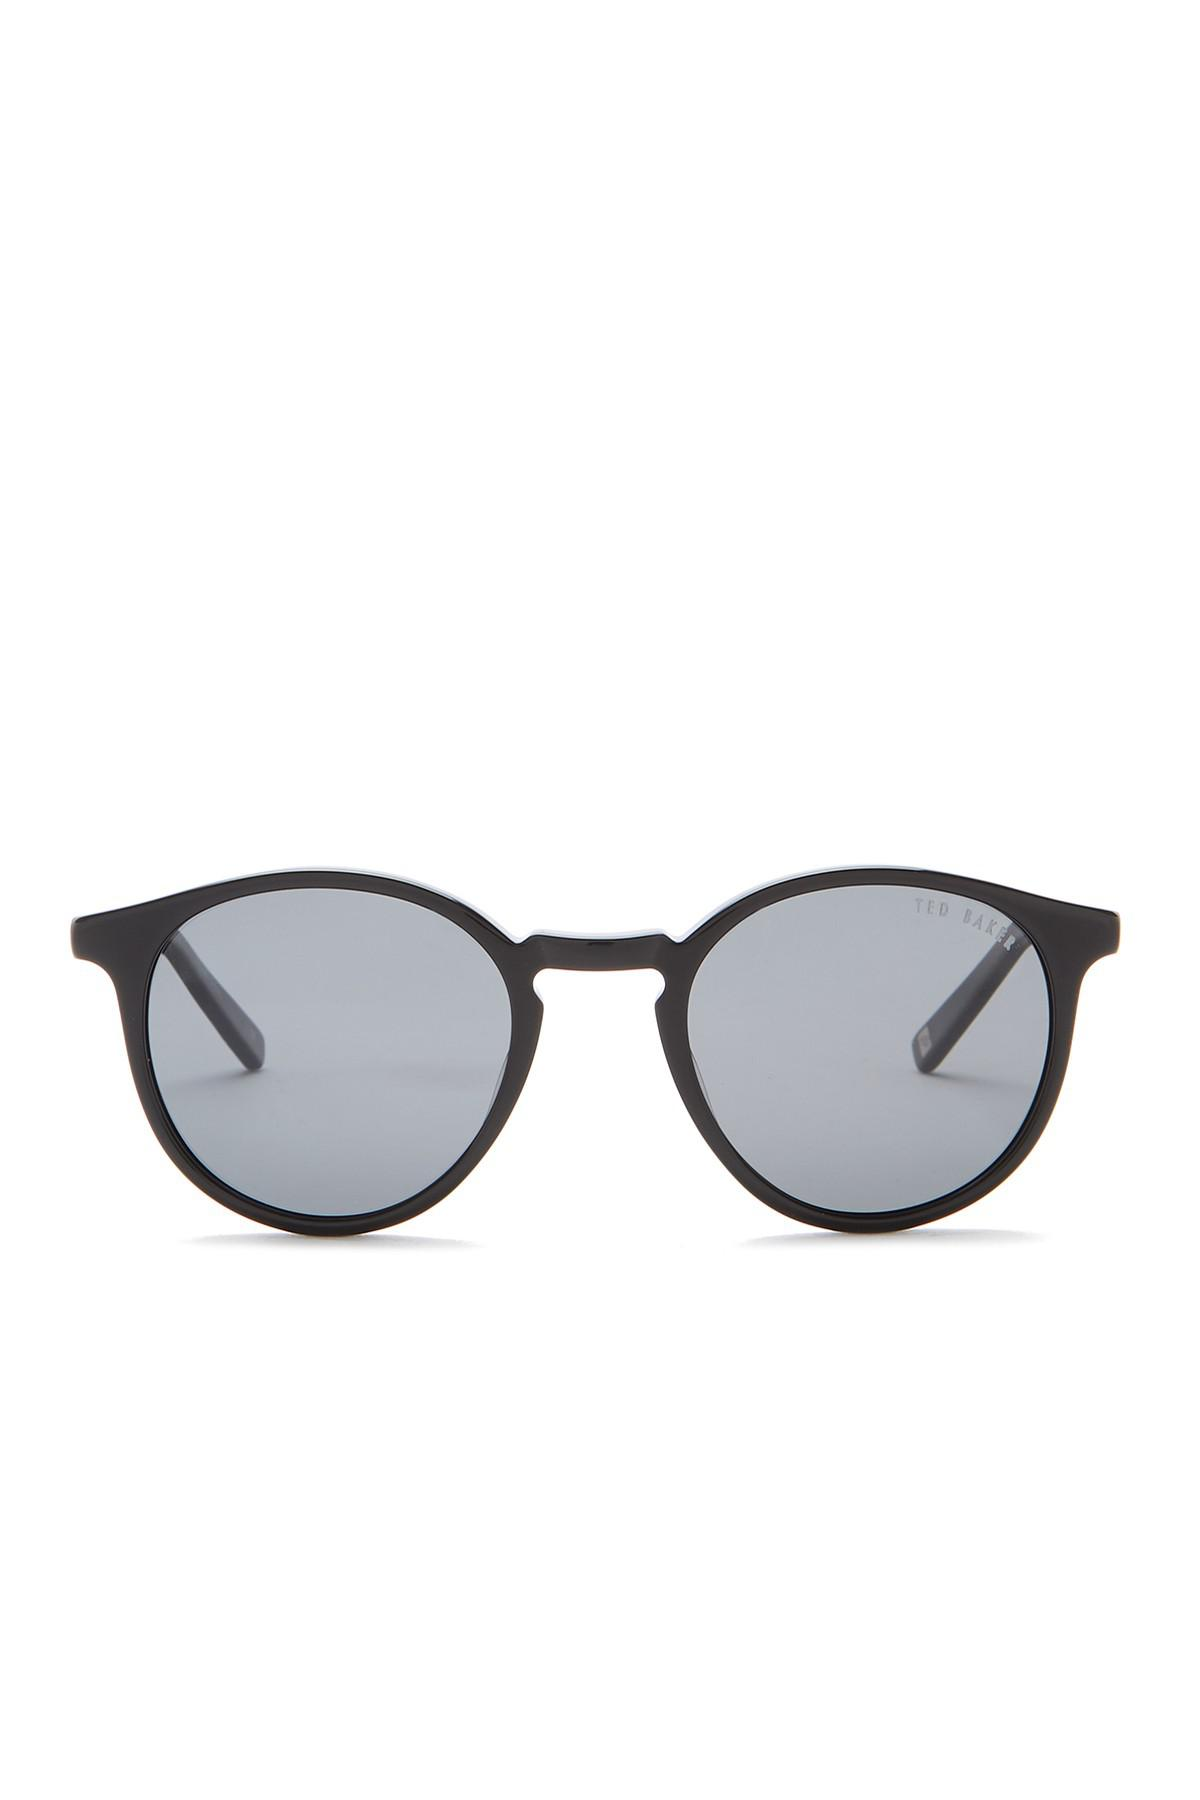 b059346d30 Gallery. Previously sold at  Nordstrom Rack · Men s Round Sunglasses ...